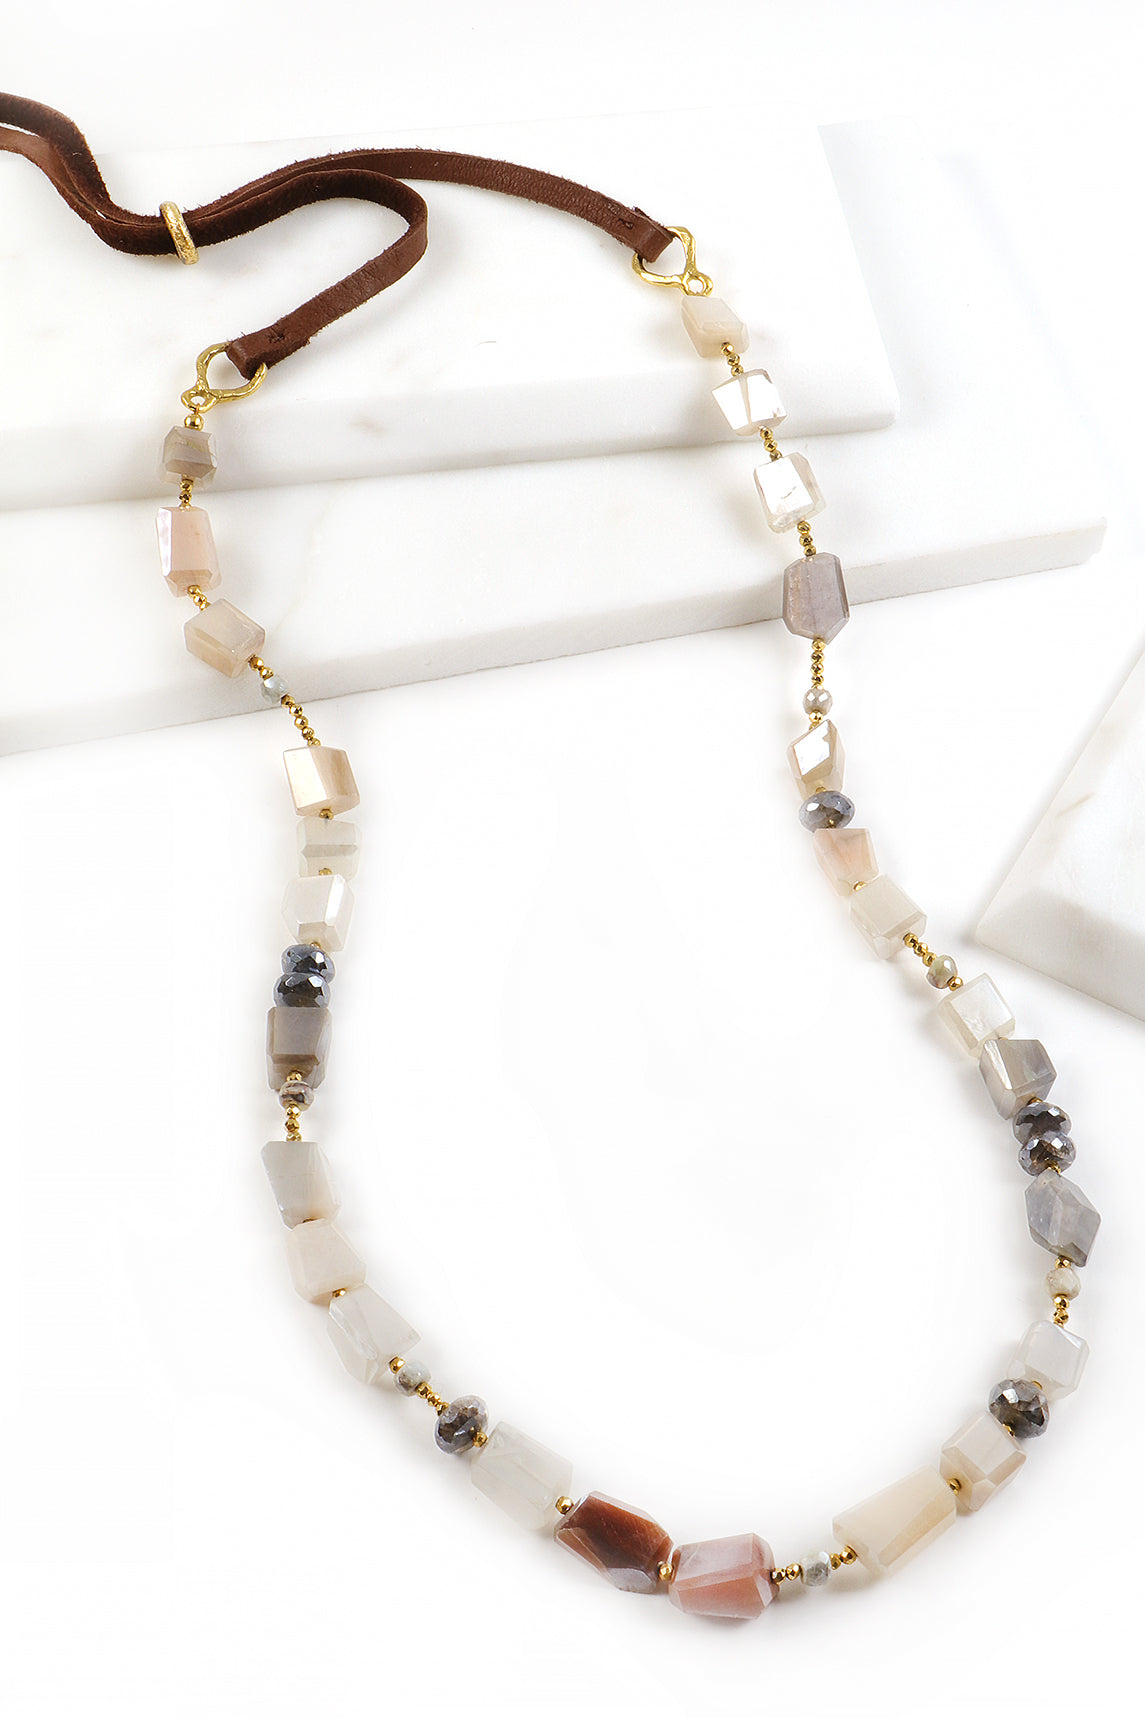 Peach Moonstone and Leather Necklace